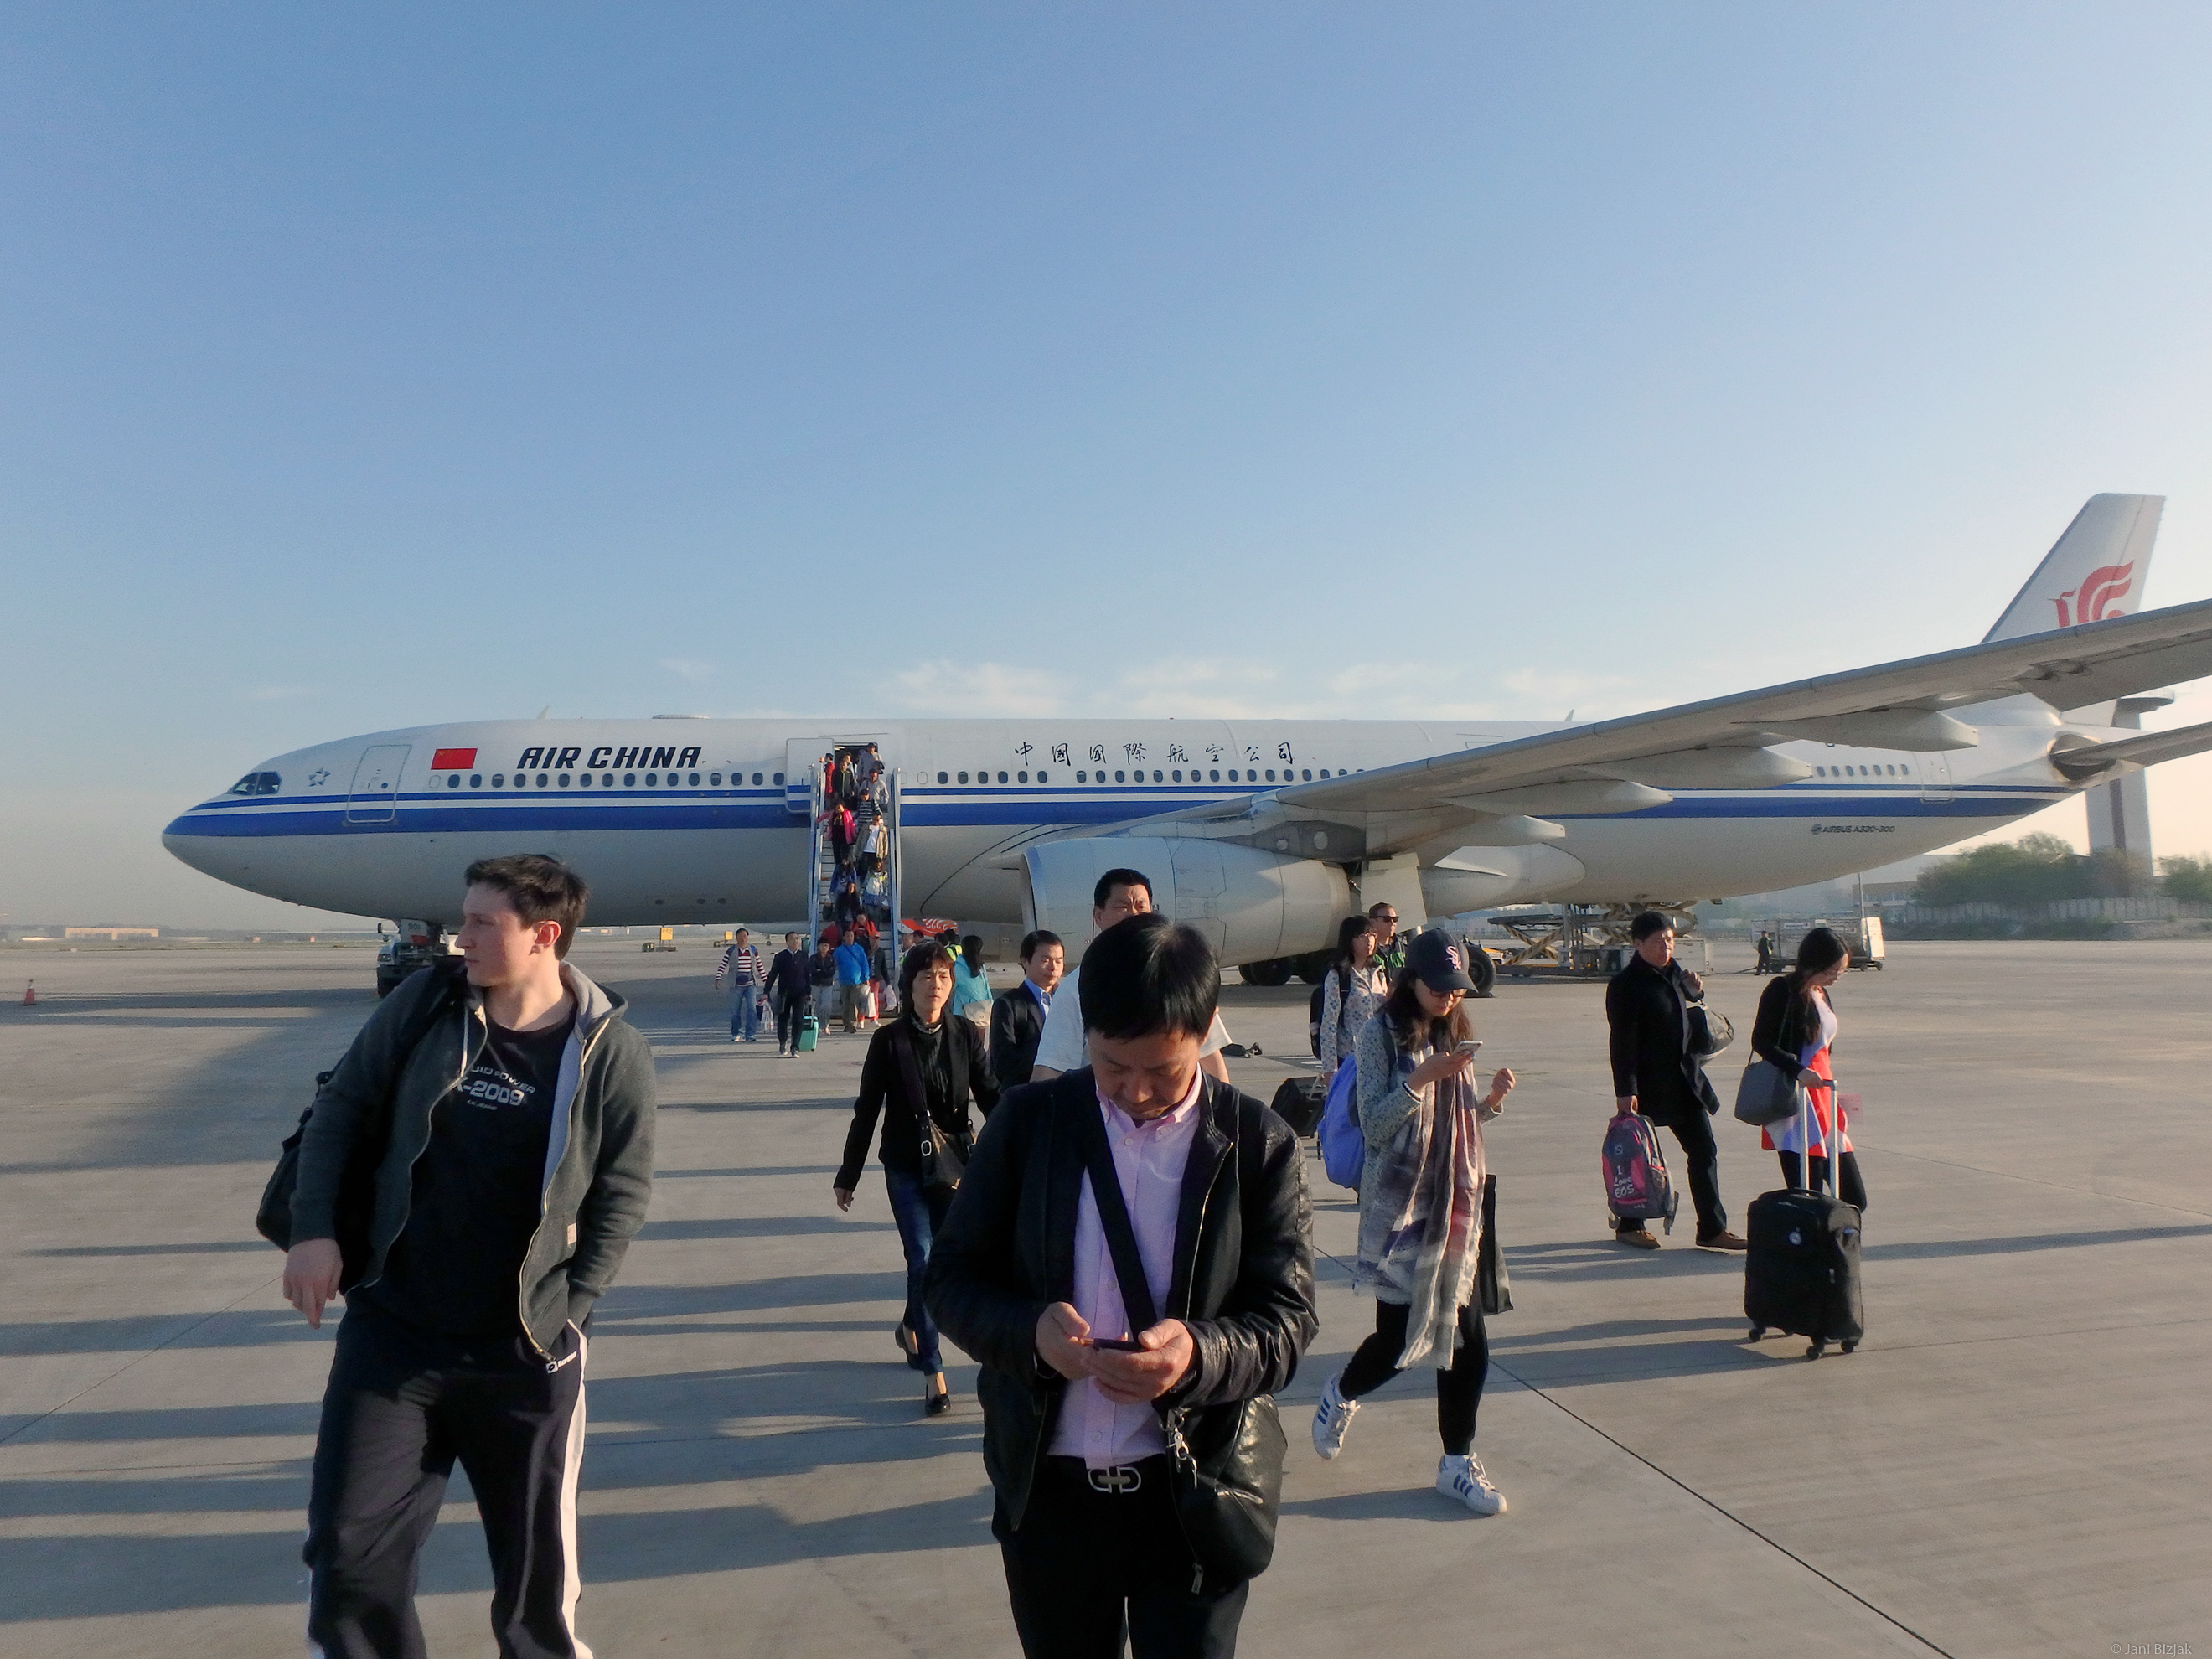 Stepping on China's soil